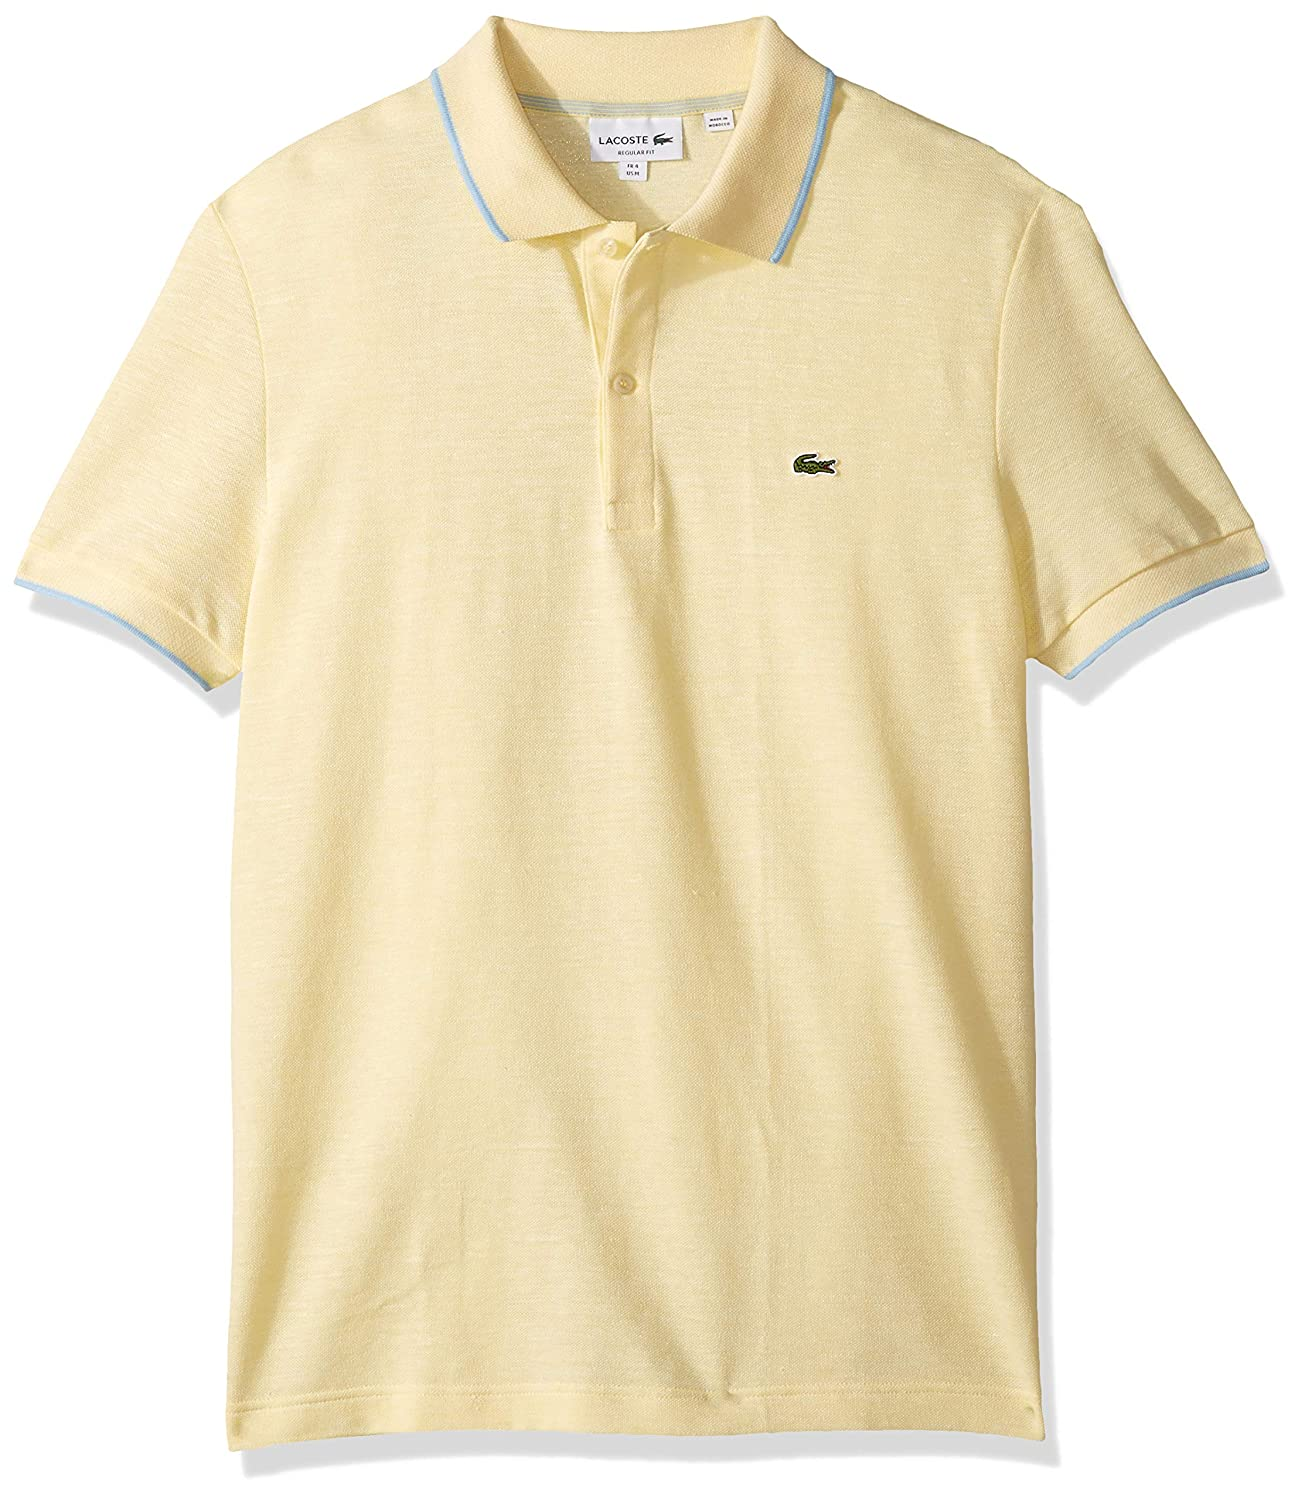 Lacoste - Polo para hombre (talla XL), color amarillo: Amazon.es ...